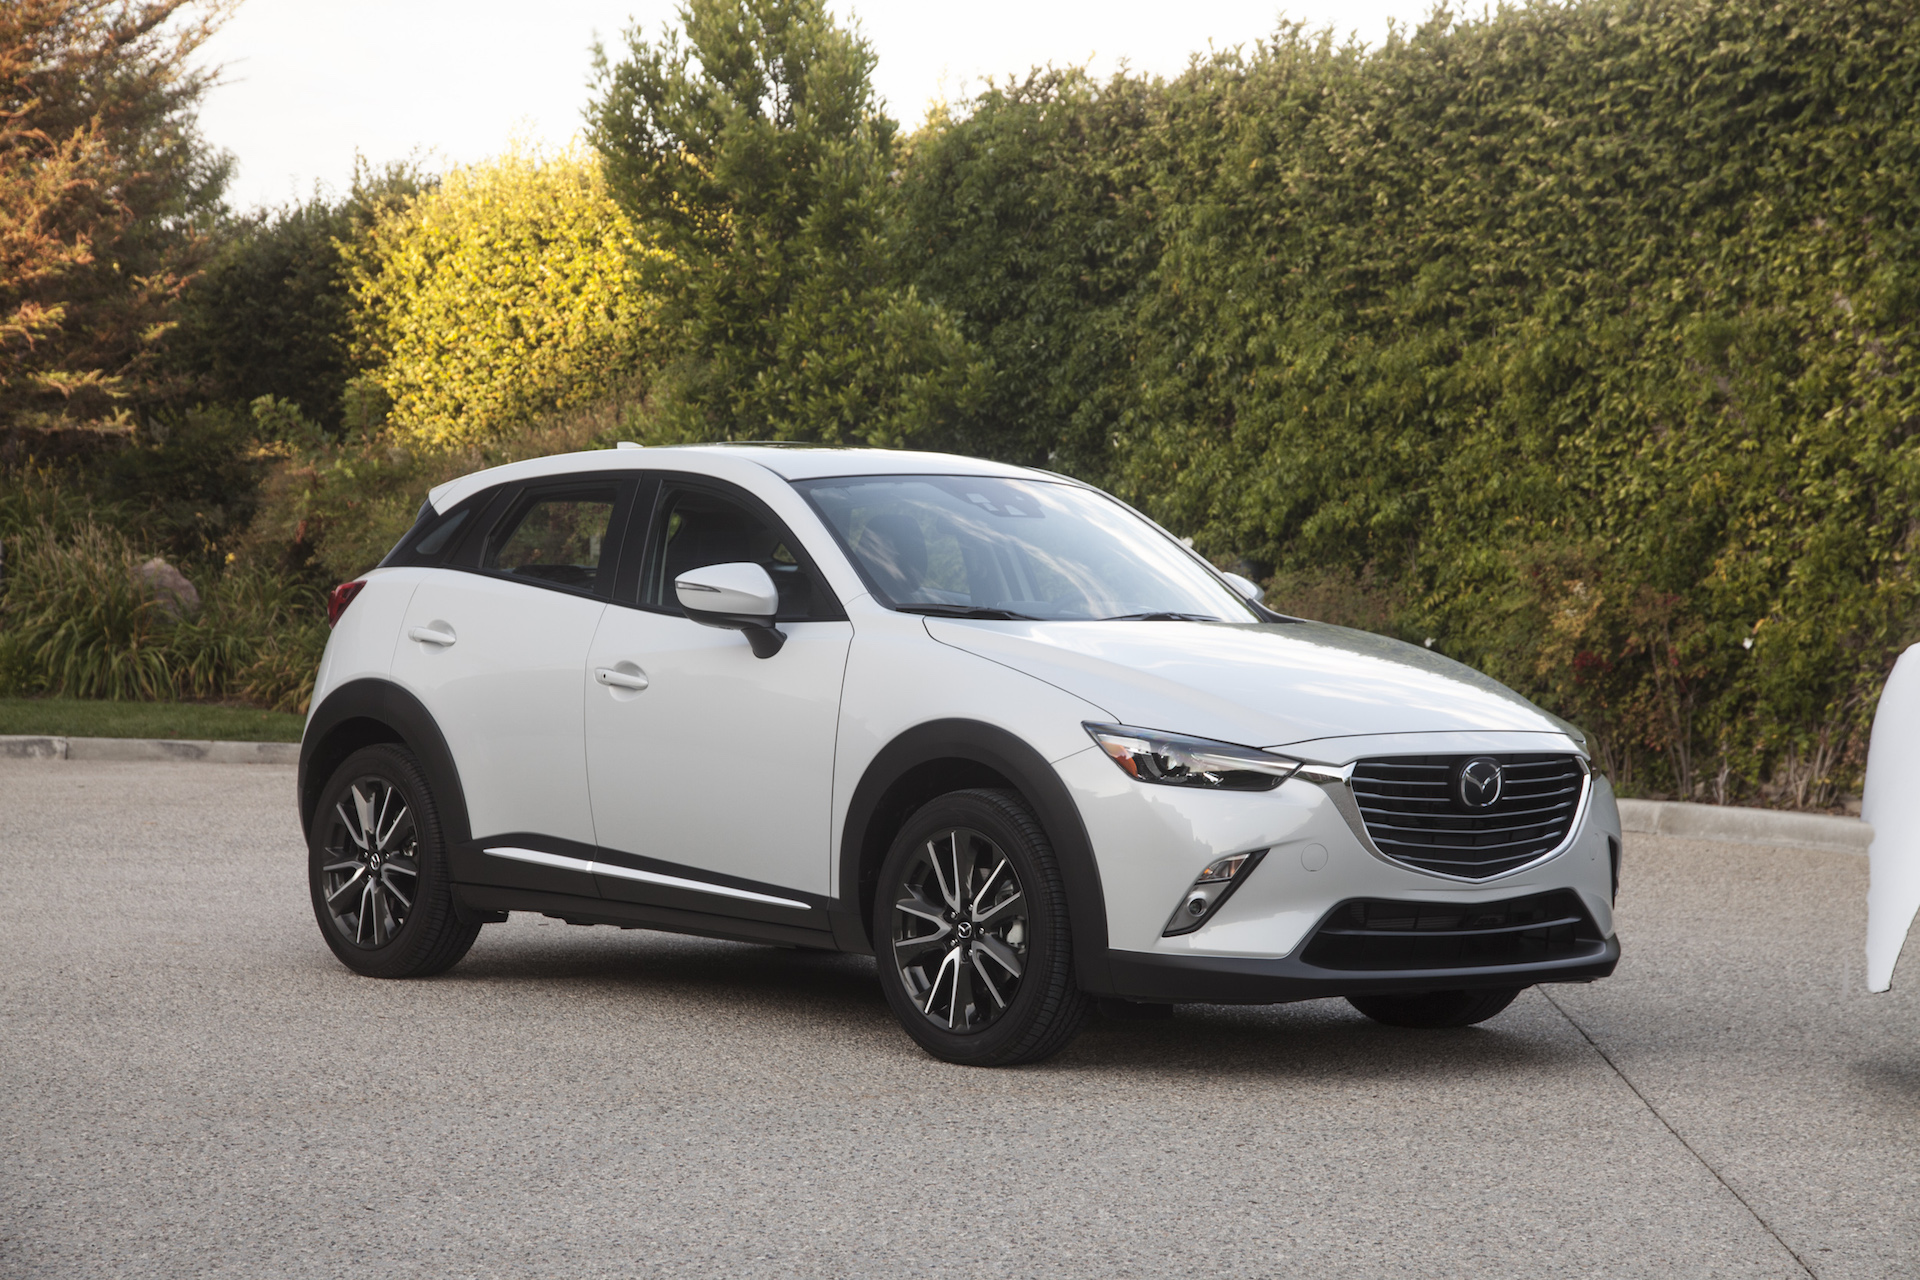 new and used mazda cx 3 prices photos reviews specs the car connection. Black Bedroom Furniture Sets. Home Design Ideas